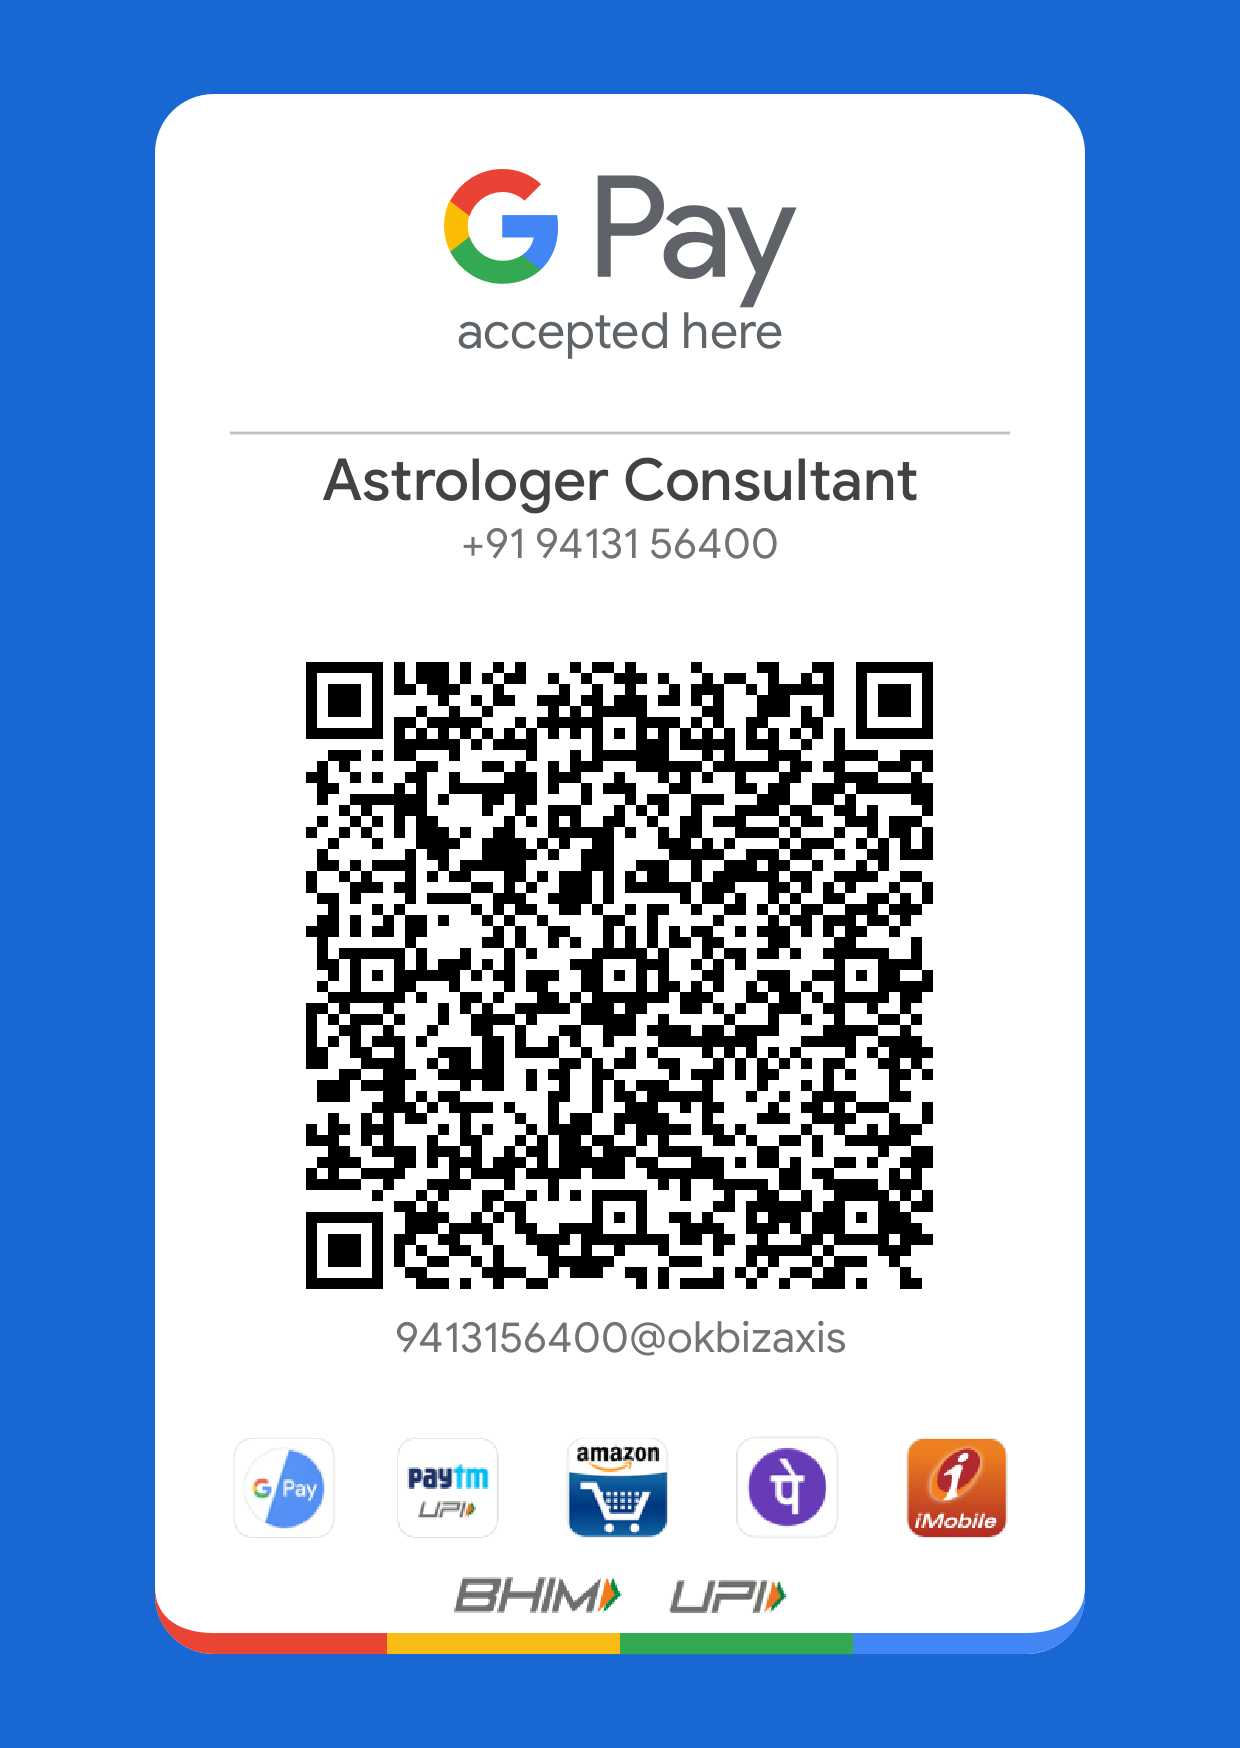 G Pay To Astrologer Sidharth